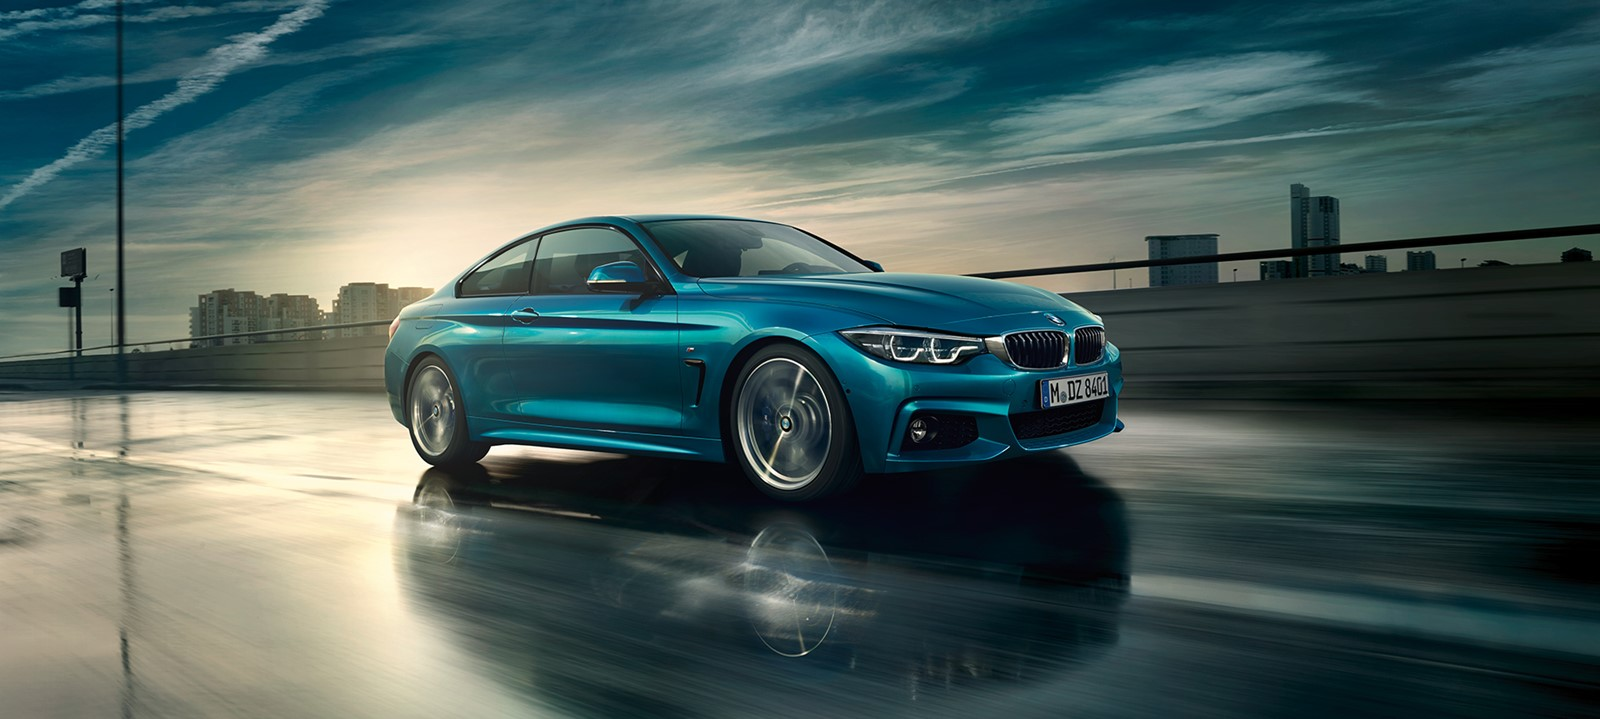 bmw 4 series coup stephen james enfield bmw. Black Bedroom Furniture Sets. Home Design Ideas